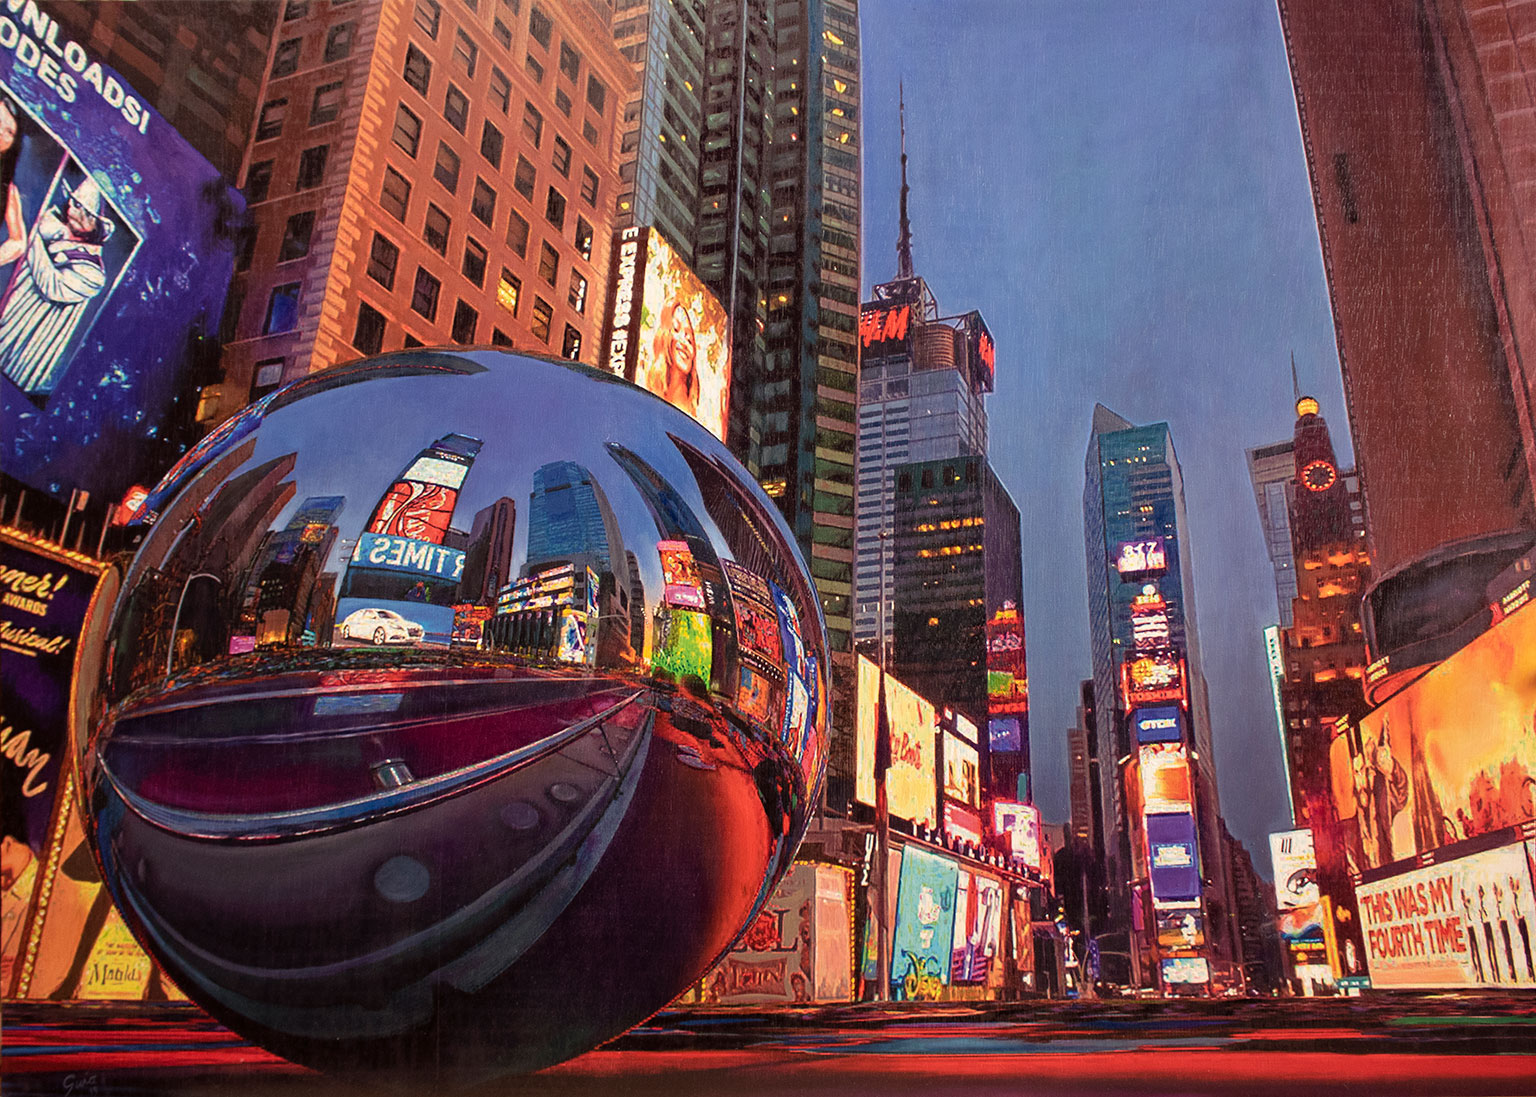 City's-soul-reflection-NY-NIGHT-1-140x100cm-1